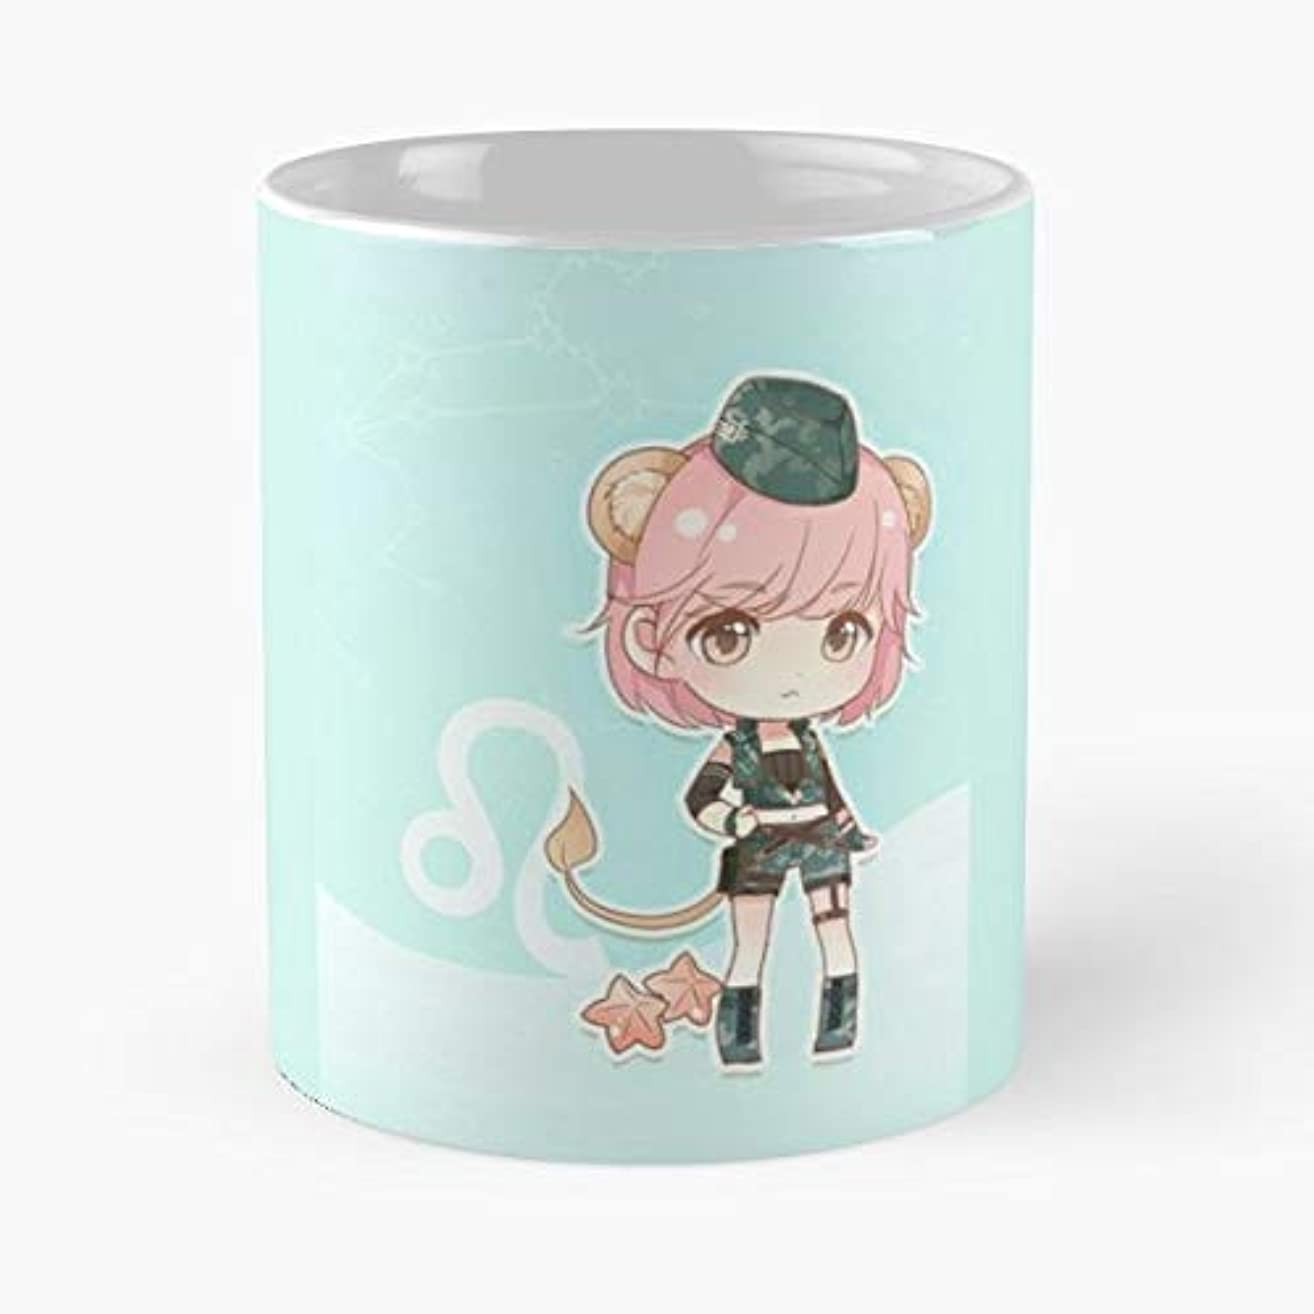 Anime Star Sign Pink Hair Girl - Funny Gifts For Men And Women Gift Coffee Mug Tea Cup White 11 Oz The Best Gift Holidays.